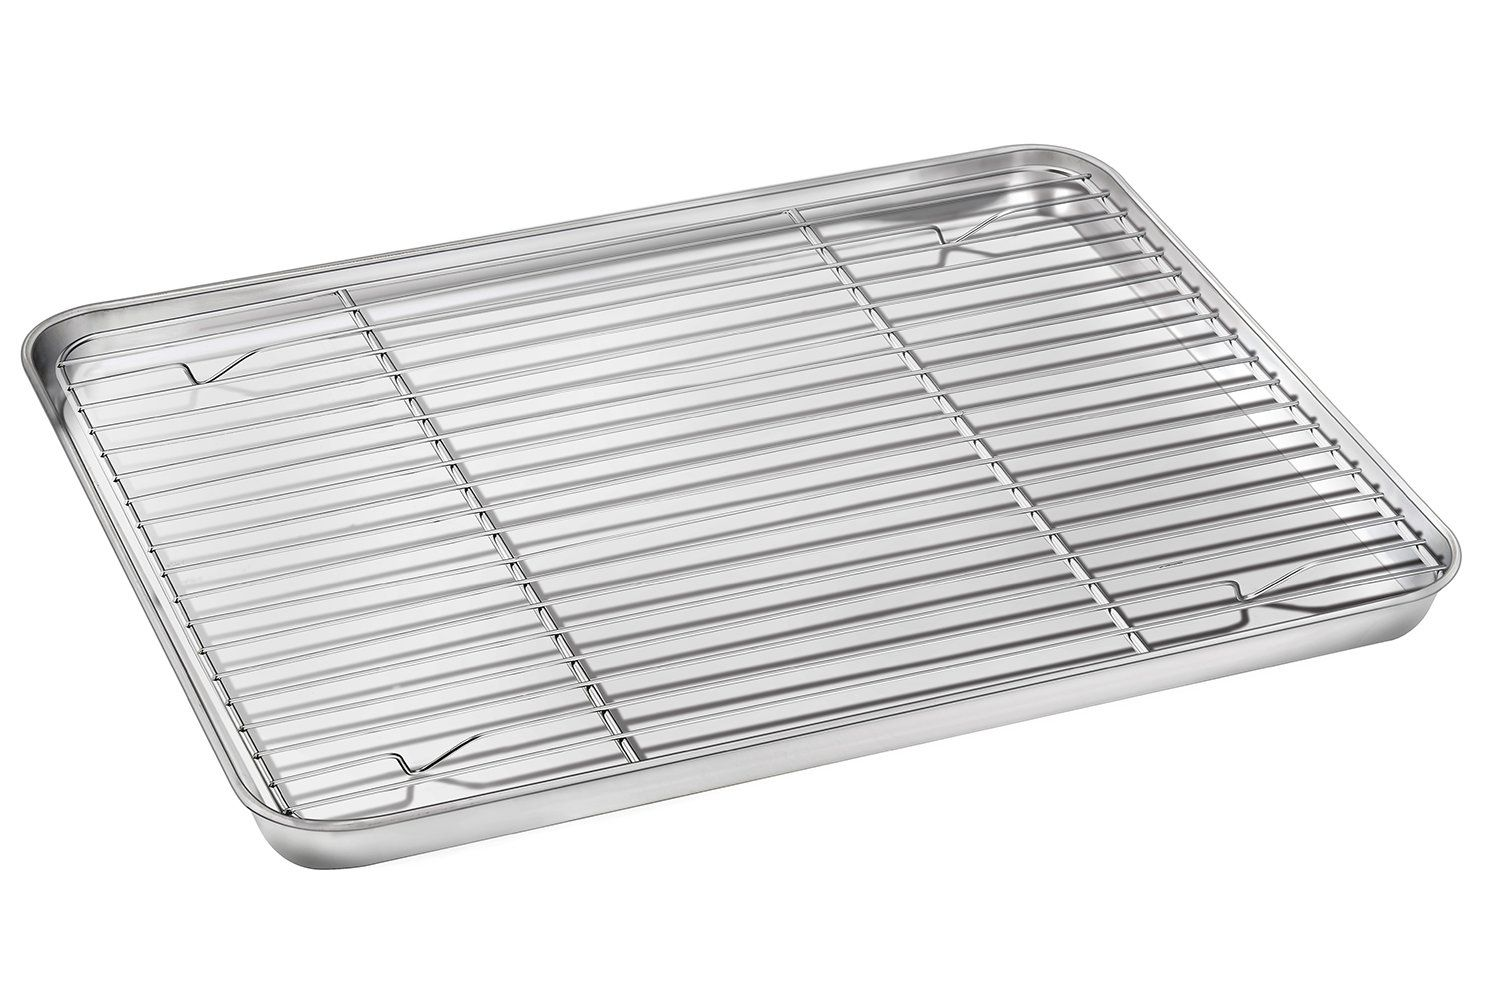 Baking Sheet With Rack Set E Far Stainless Steel Baking Pan Cookie Pan With Cooling Rack 16 X 12 X 1 Inch Rust Free An Pan Cookies Baking Pans Cooling Racks